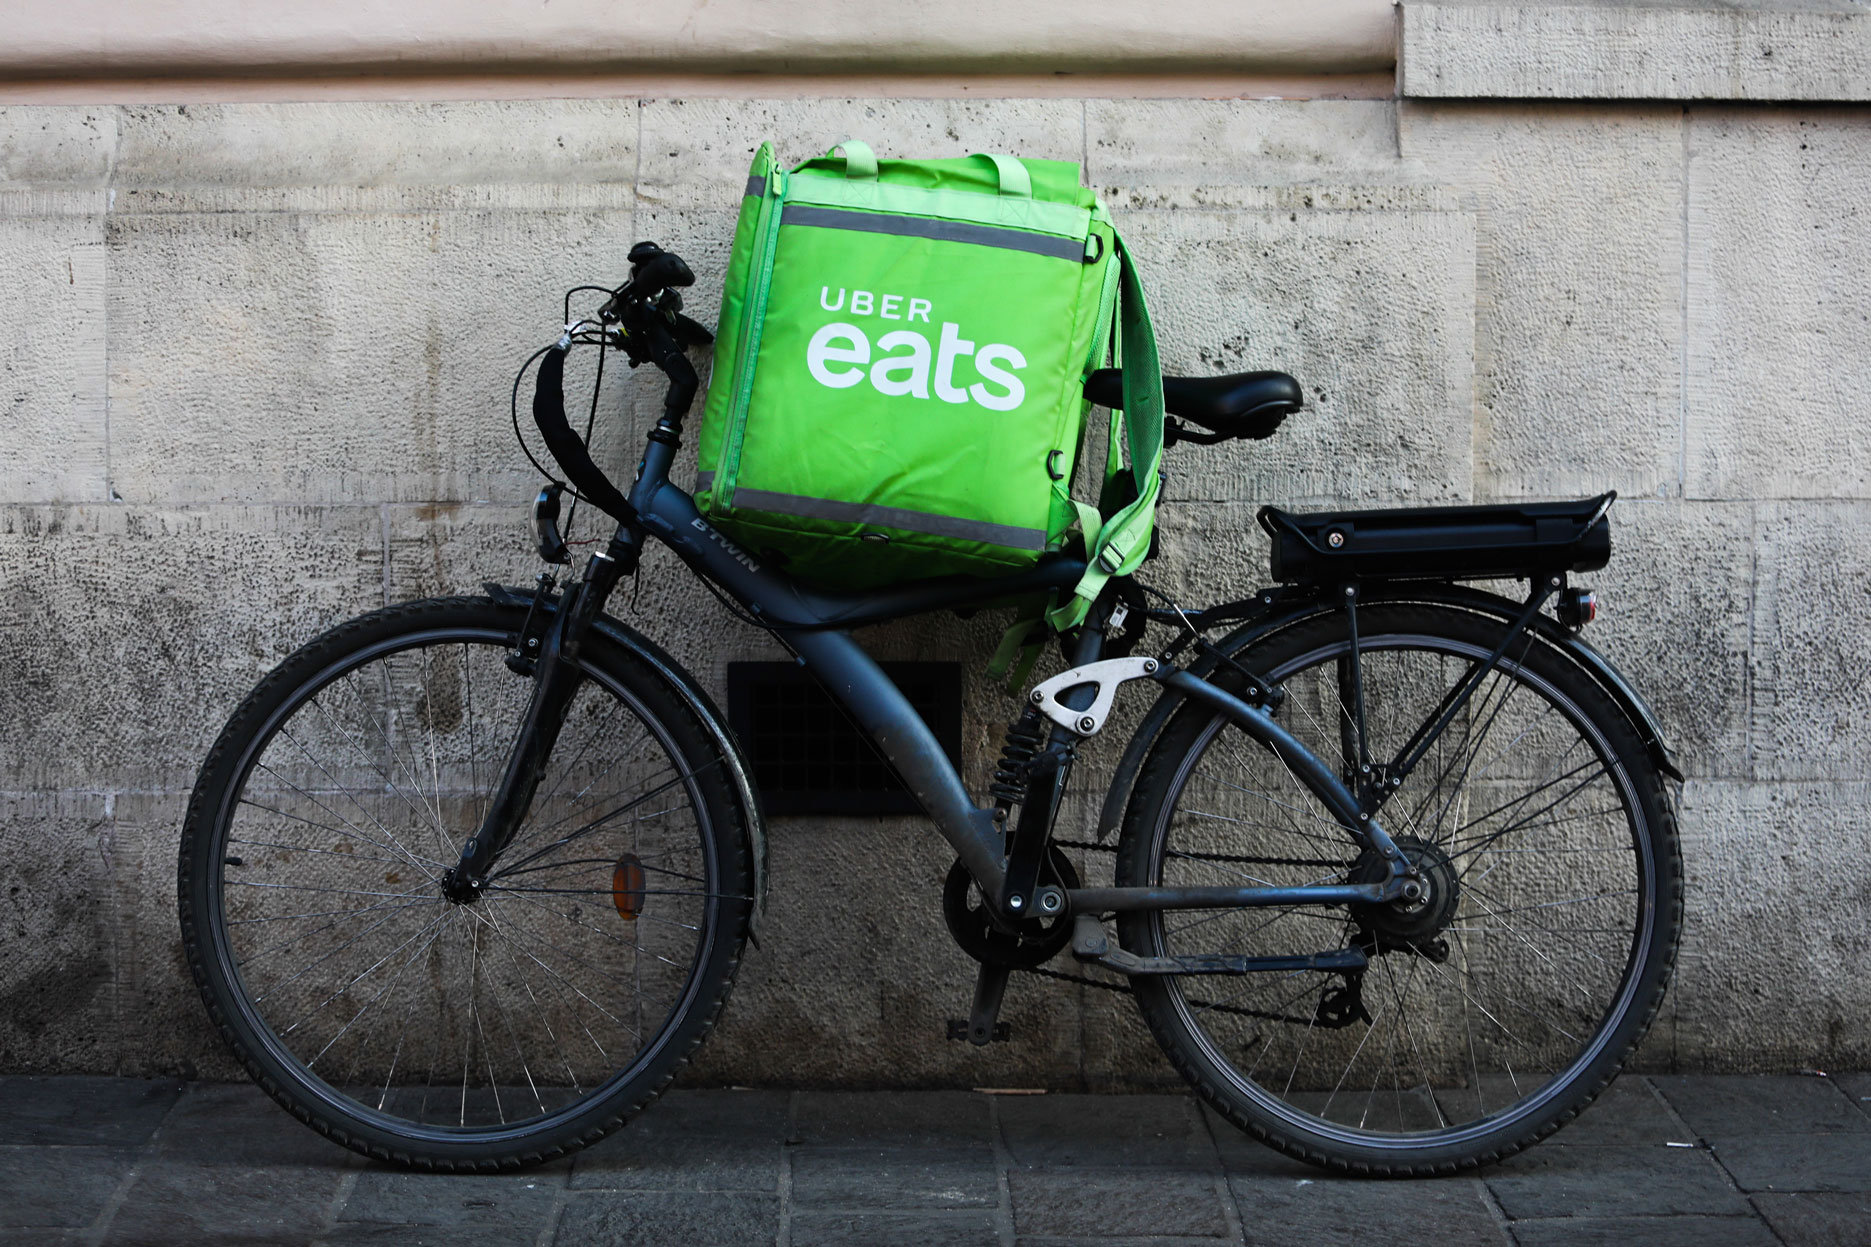 An Uber Eats delivery bicycle